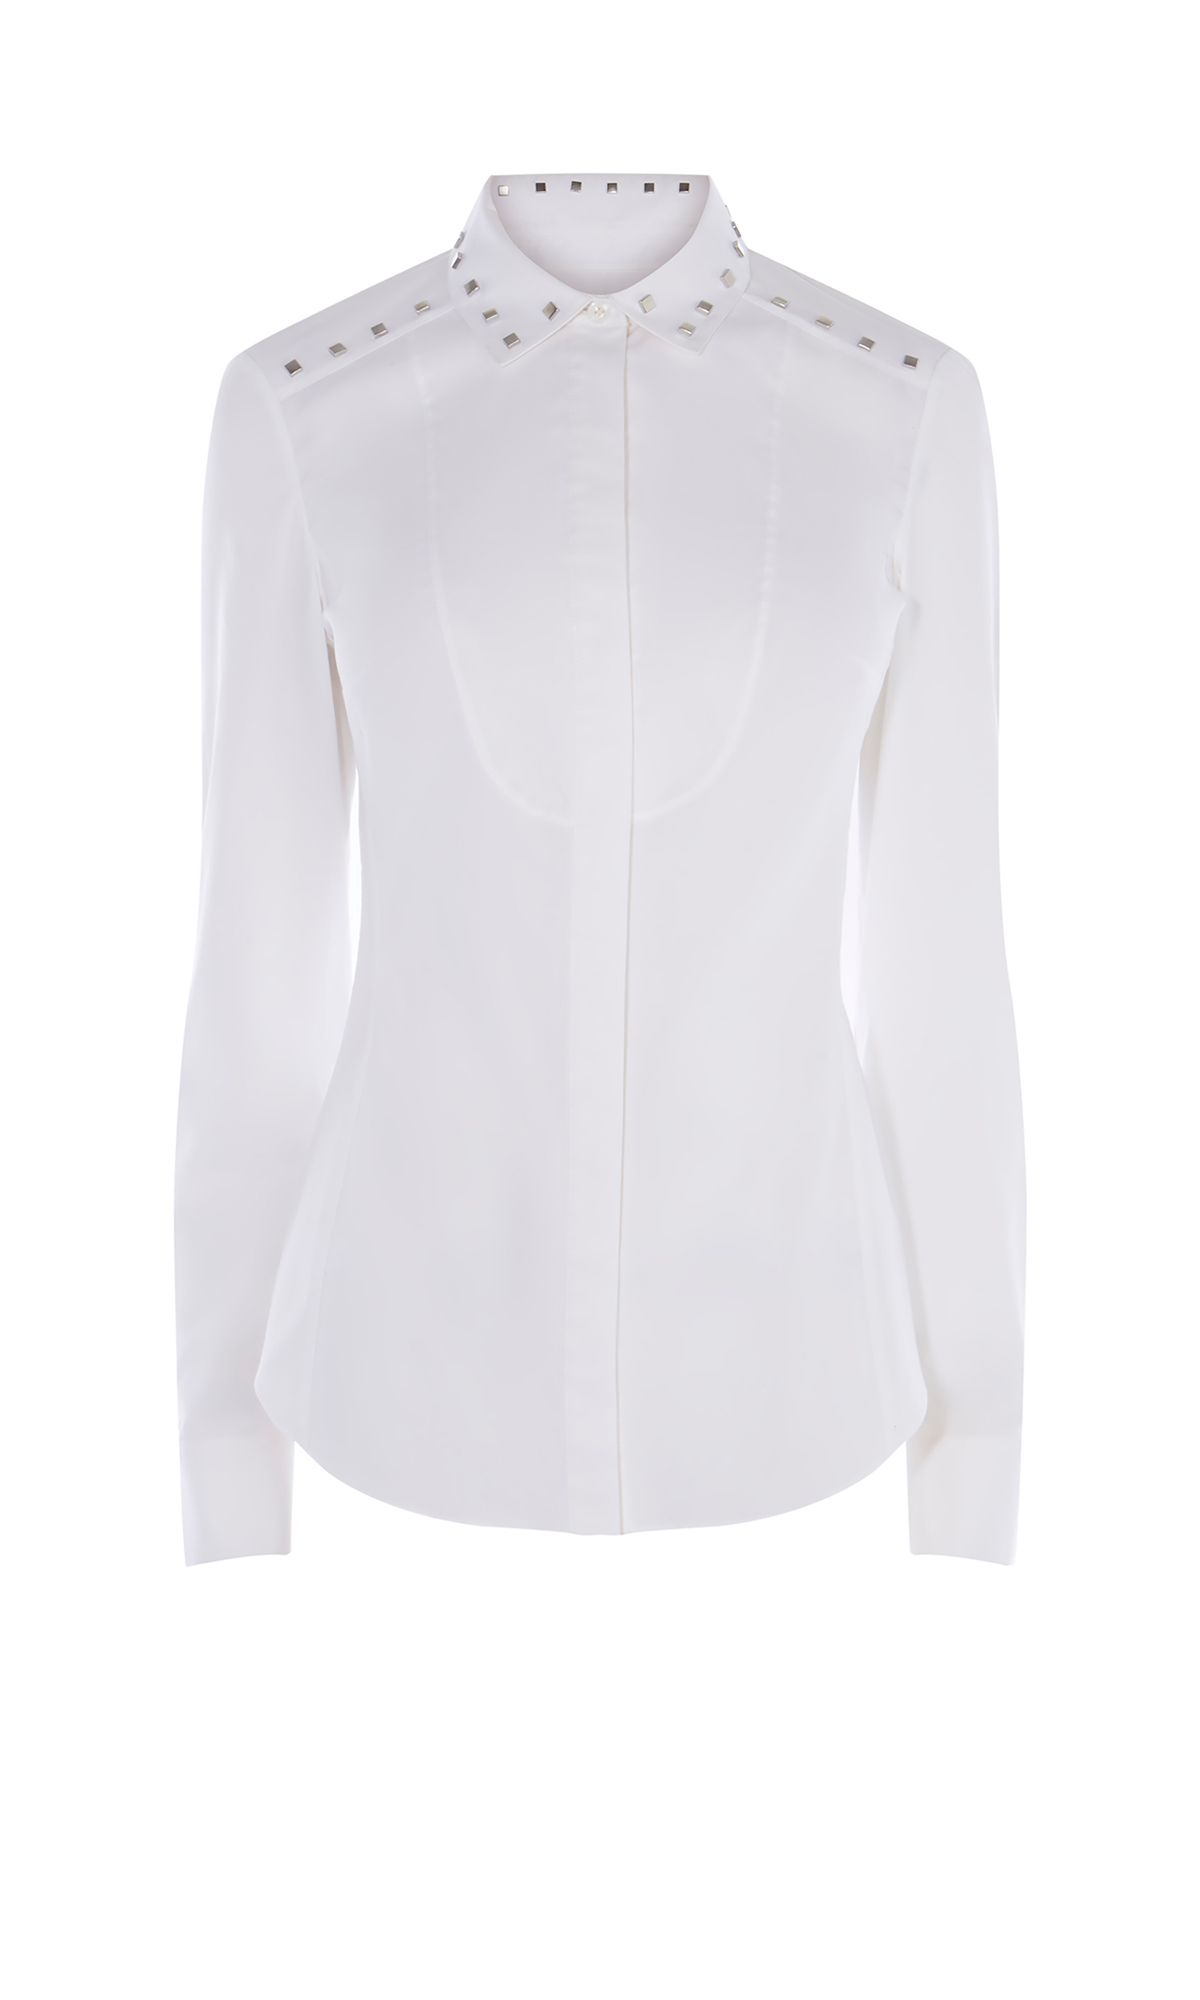 Karen Millen Studded Collar Shirt, White